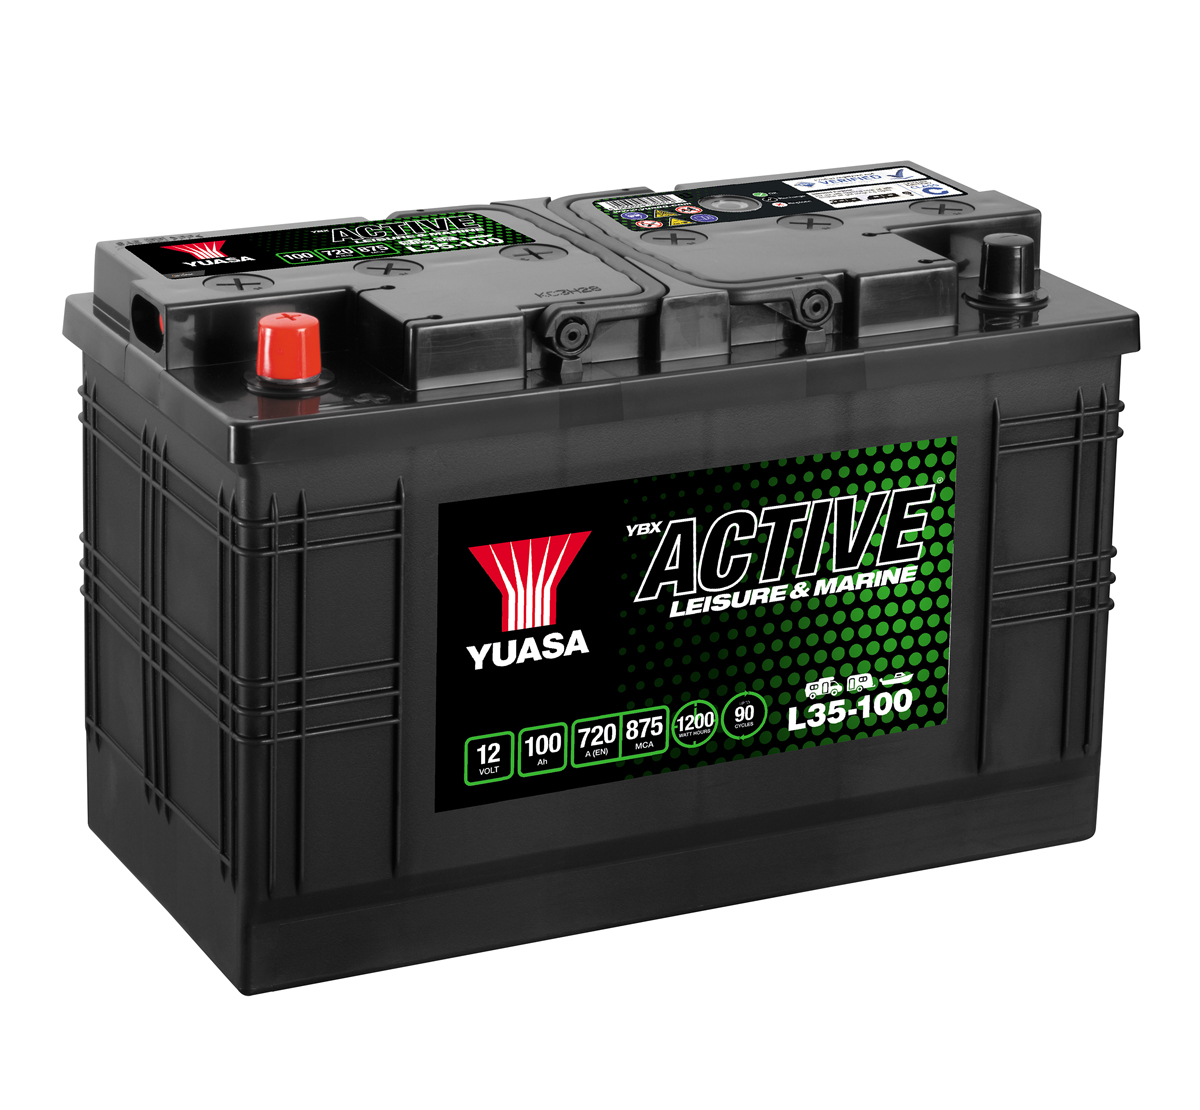 Yuasa YBX Active L35-100 Leisure Battery